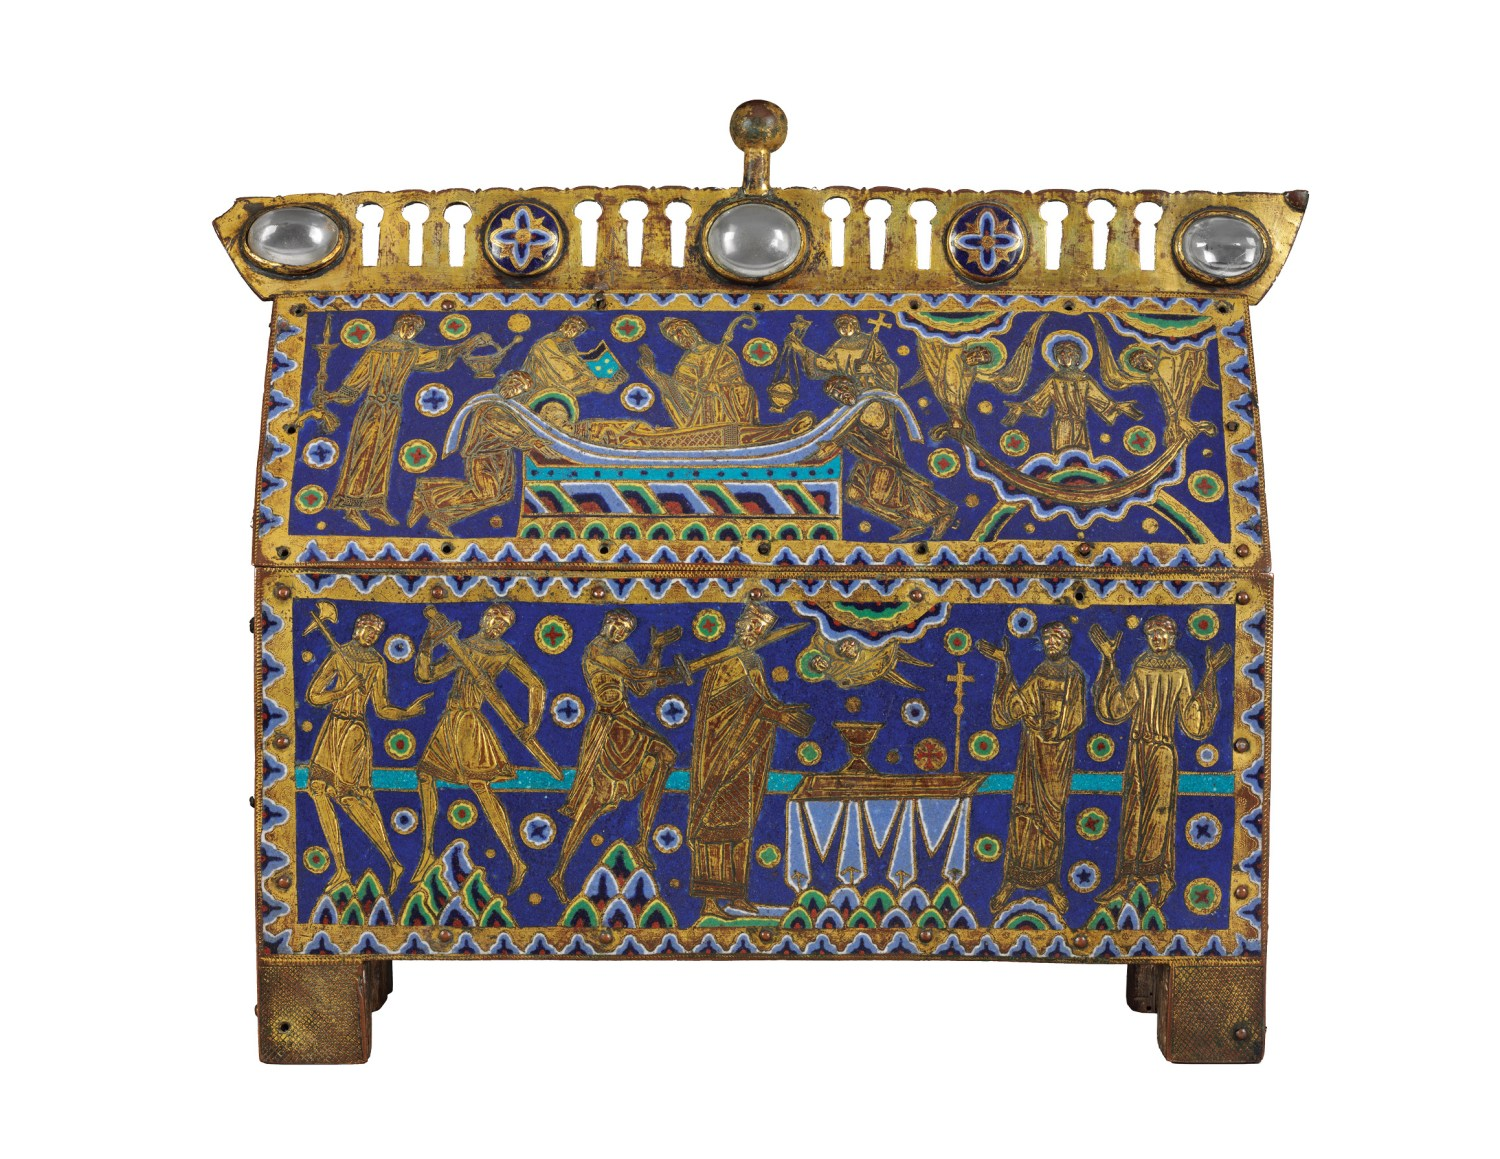 ABOVE The Becket Casket, an enamelled reliquary casket showing the murder of Thomas Becket, from Limoges, France, c.1180-1190. Size: 29.5 x 34.4 x